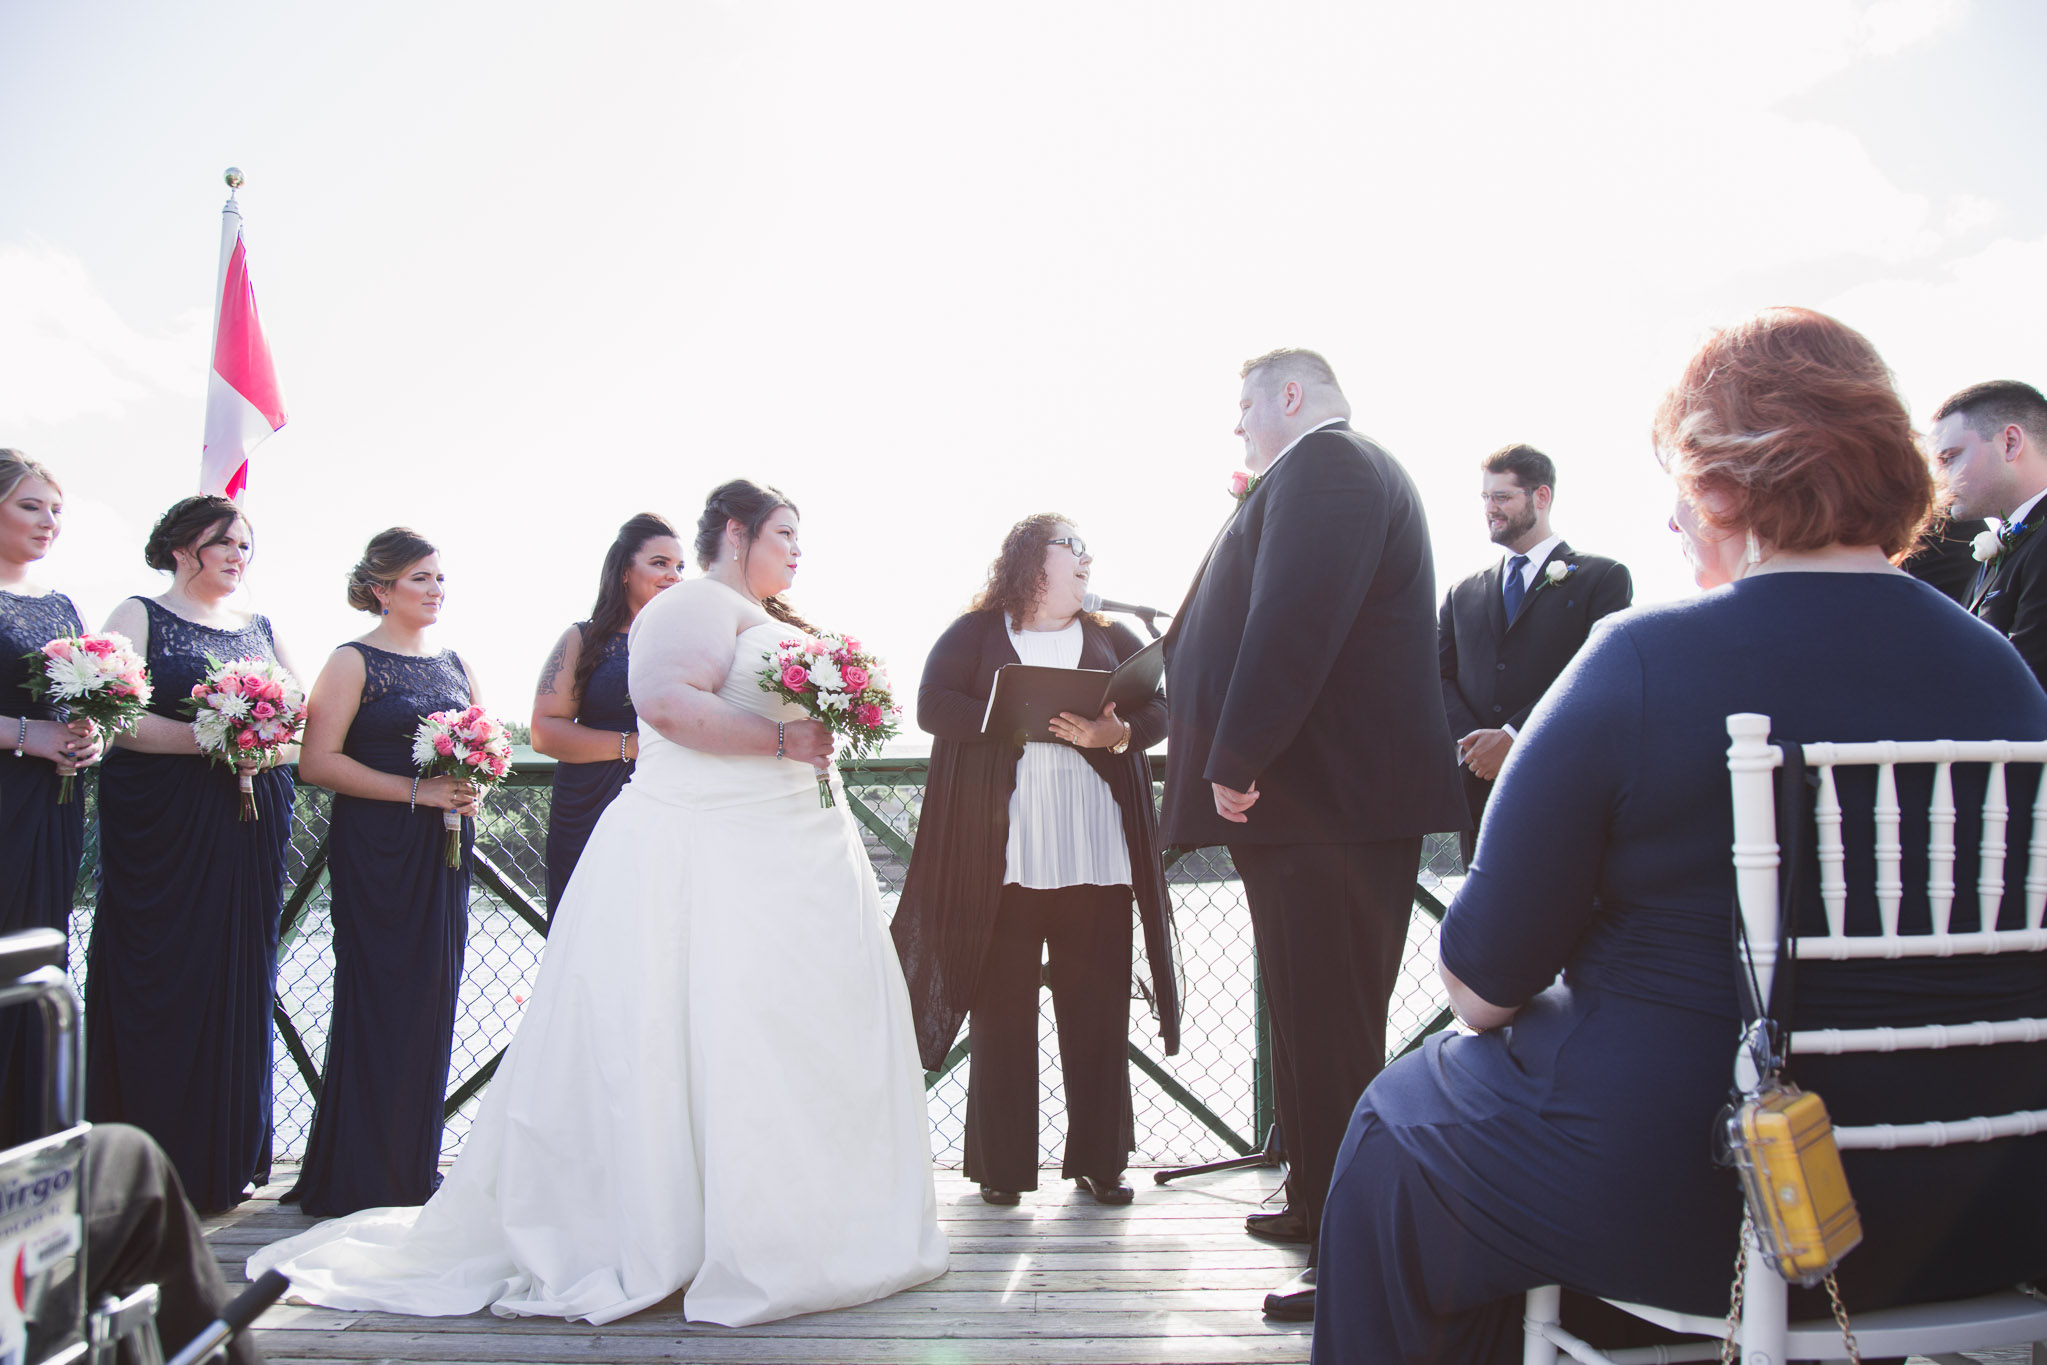 Image of wedding ceremony in Saint Mary's boat club